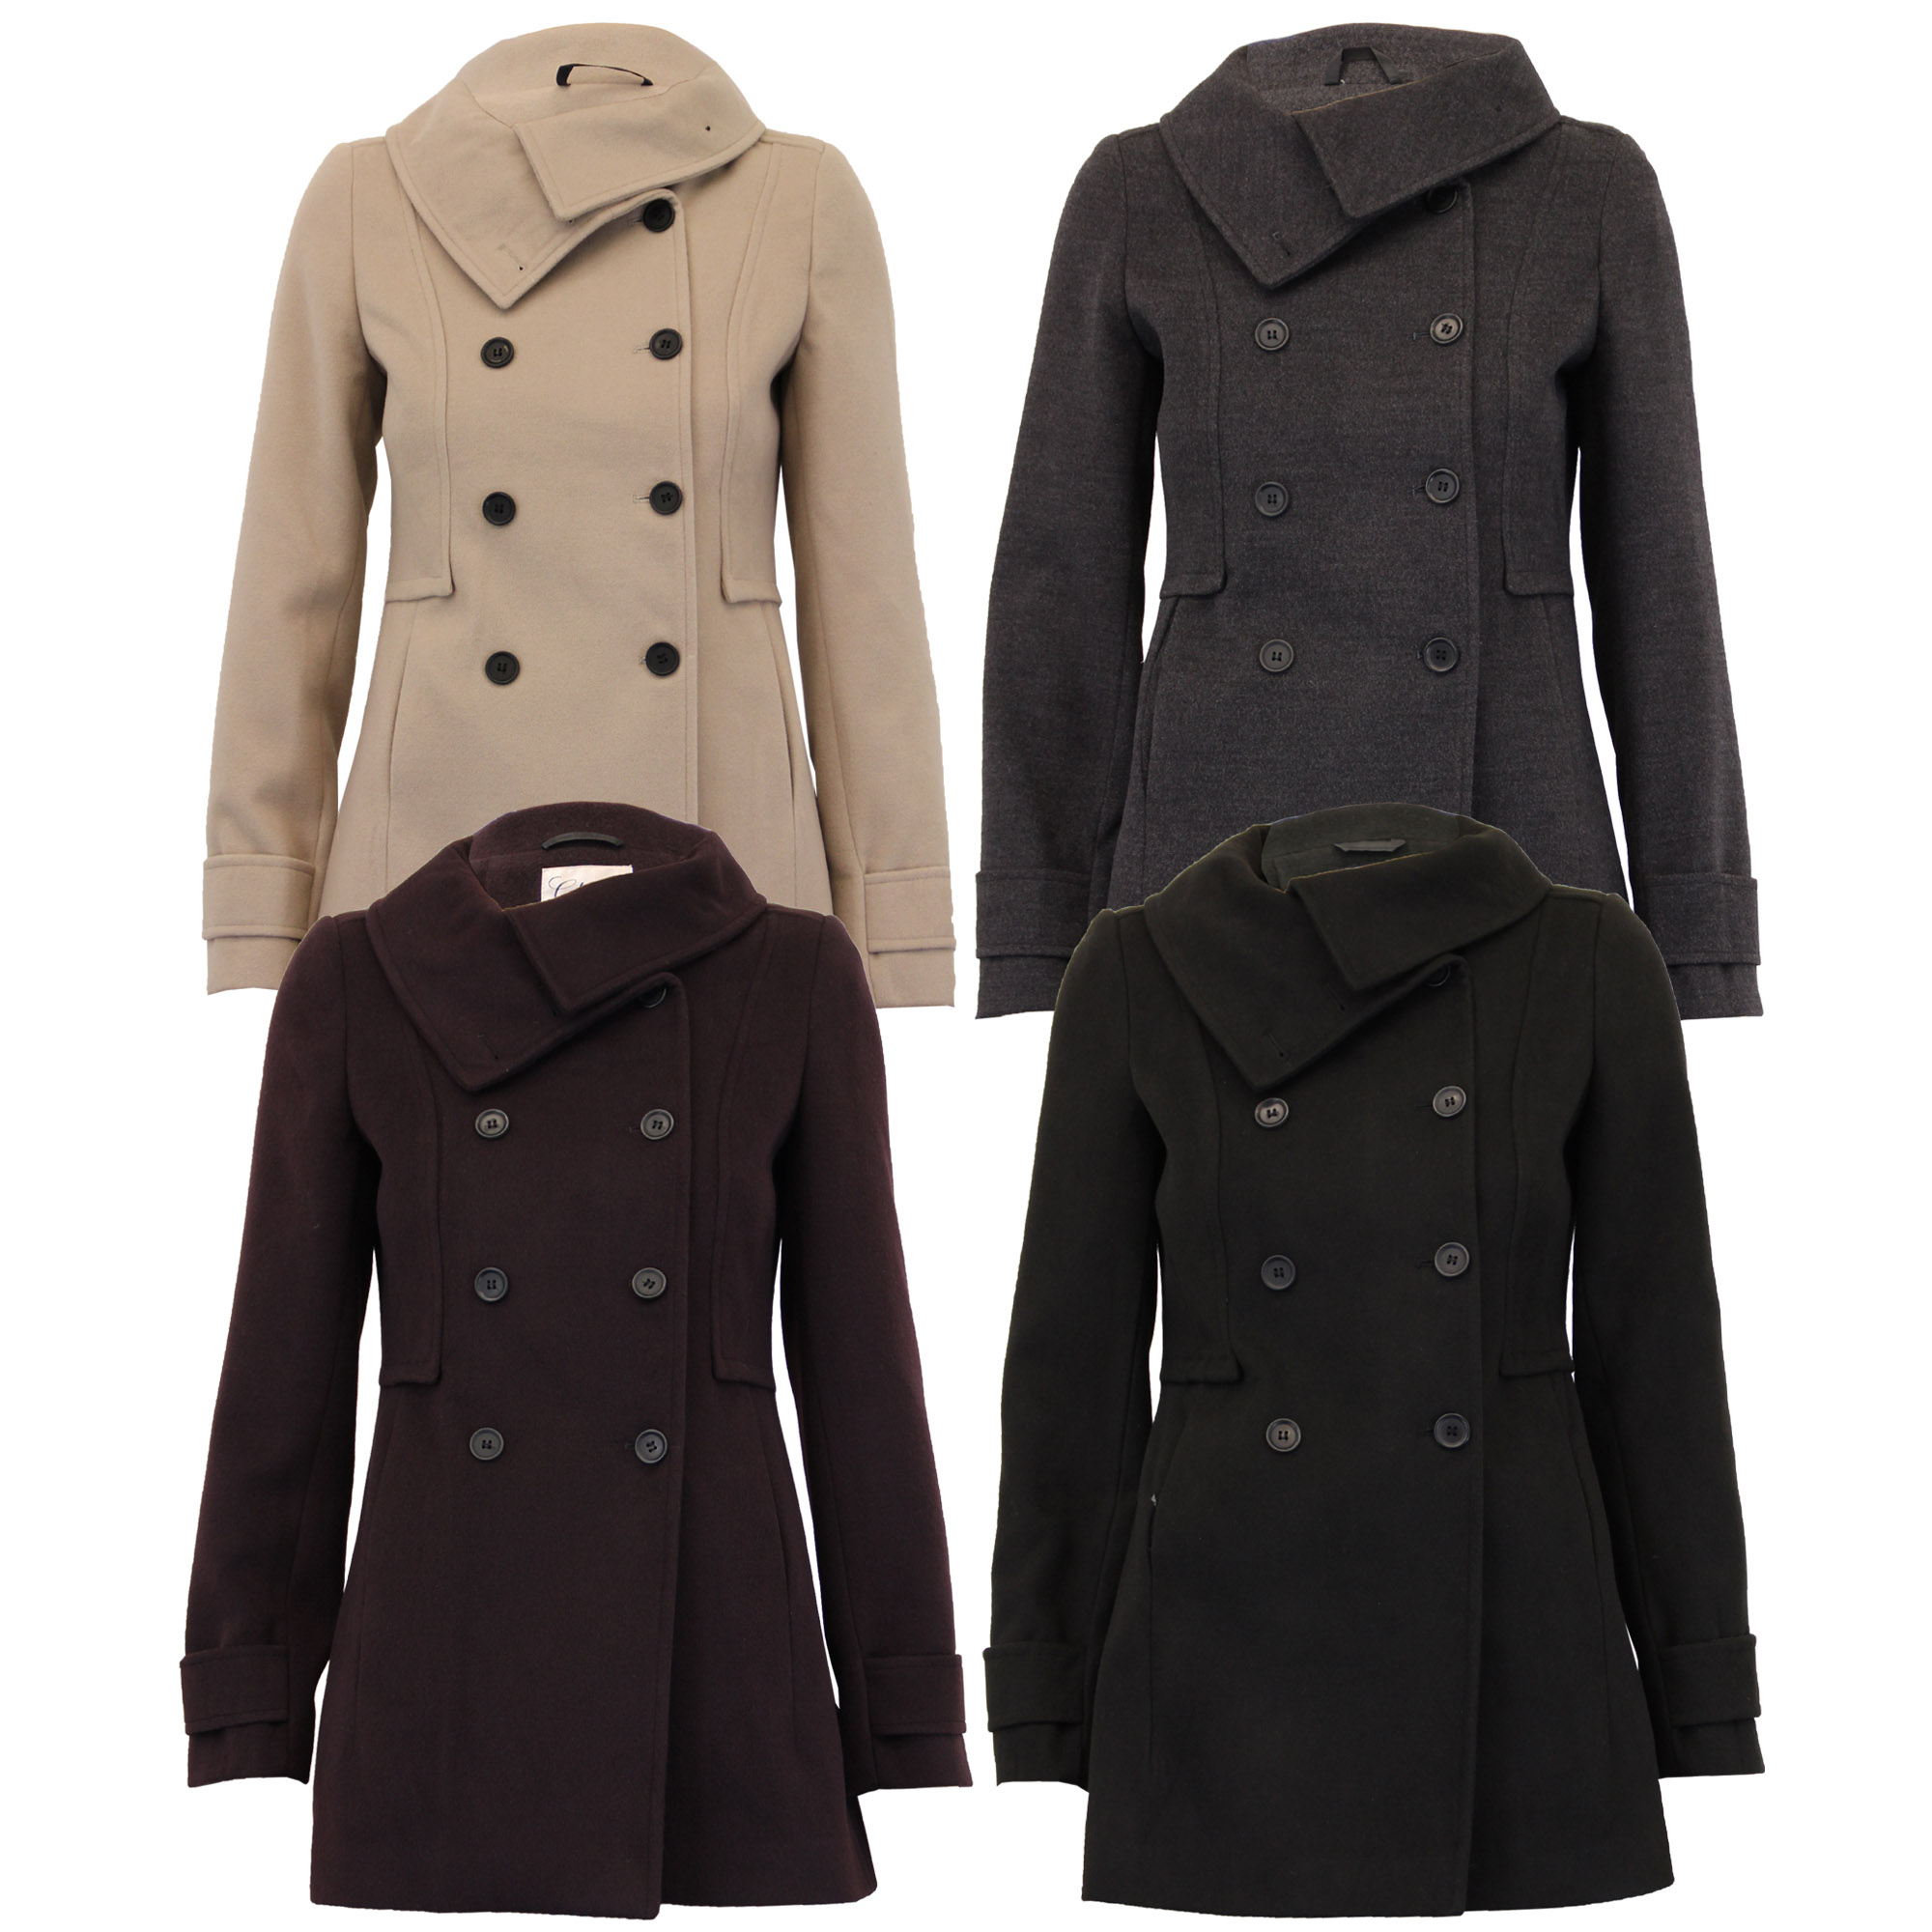 Ladies Wool Look Coat Womens Jacket Double Breasted Outerwear Trench Winter New | EBay